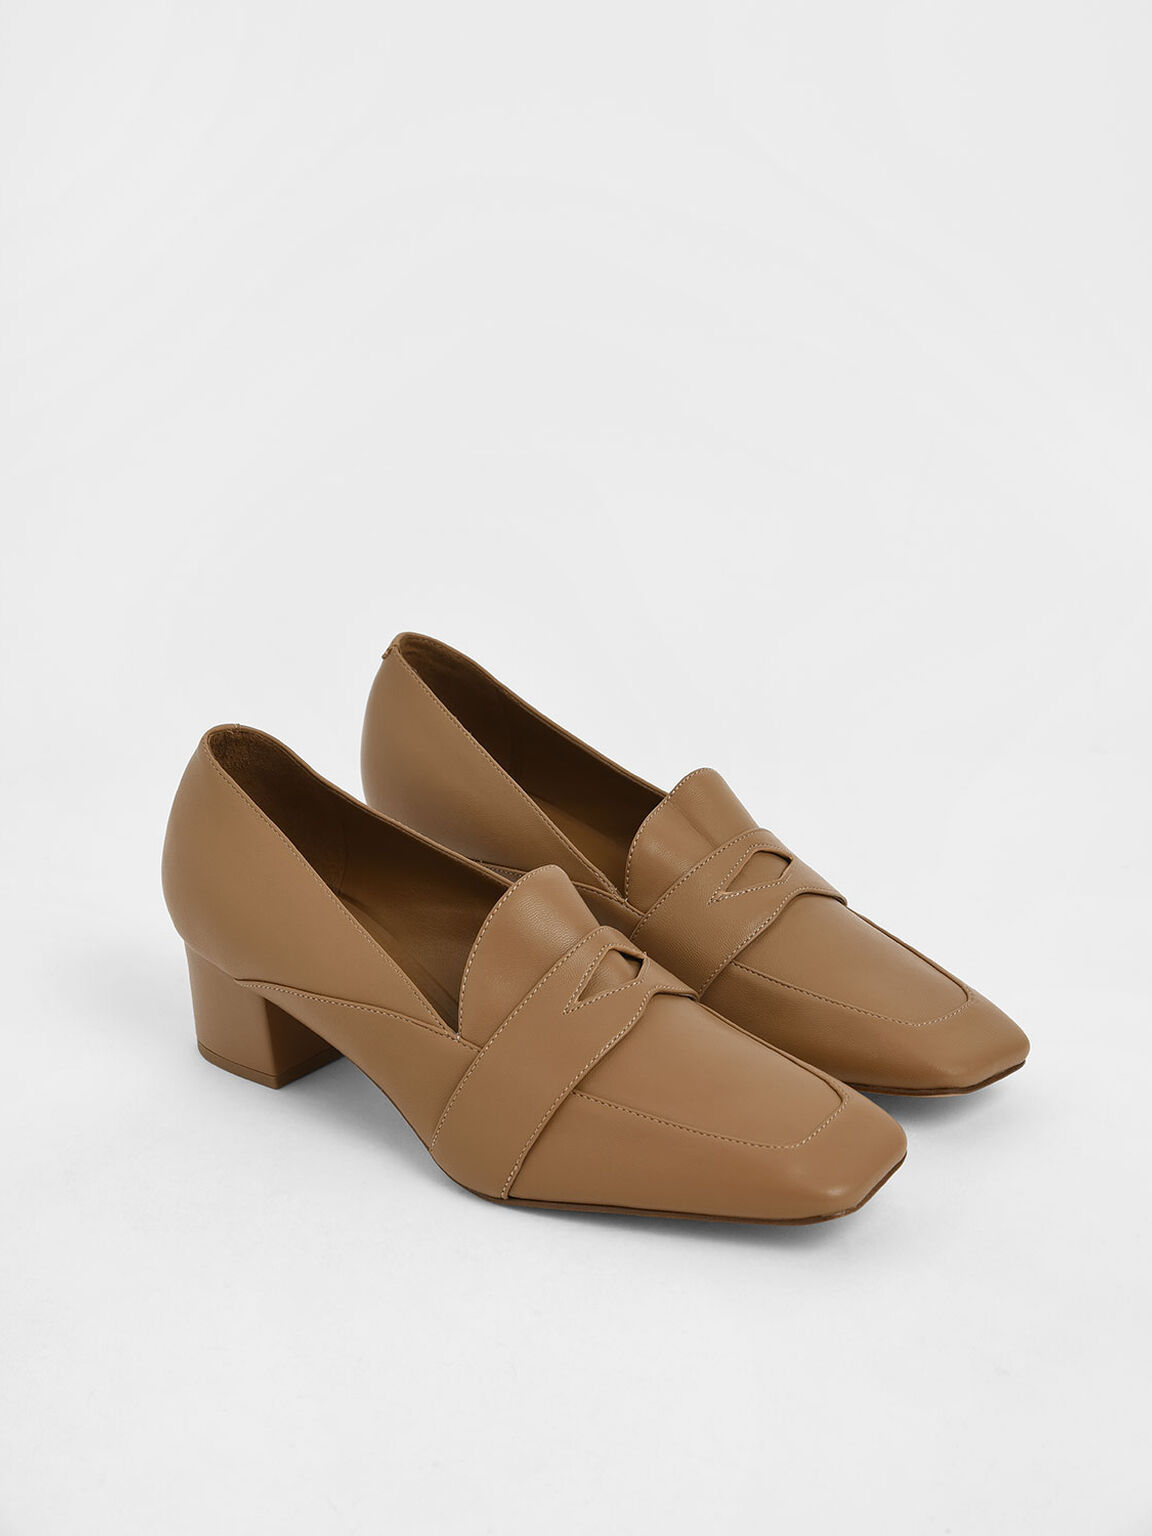 Square Toe Block Heel Loafers, Beige, hi-res